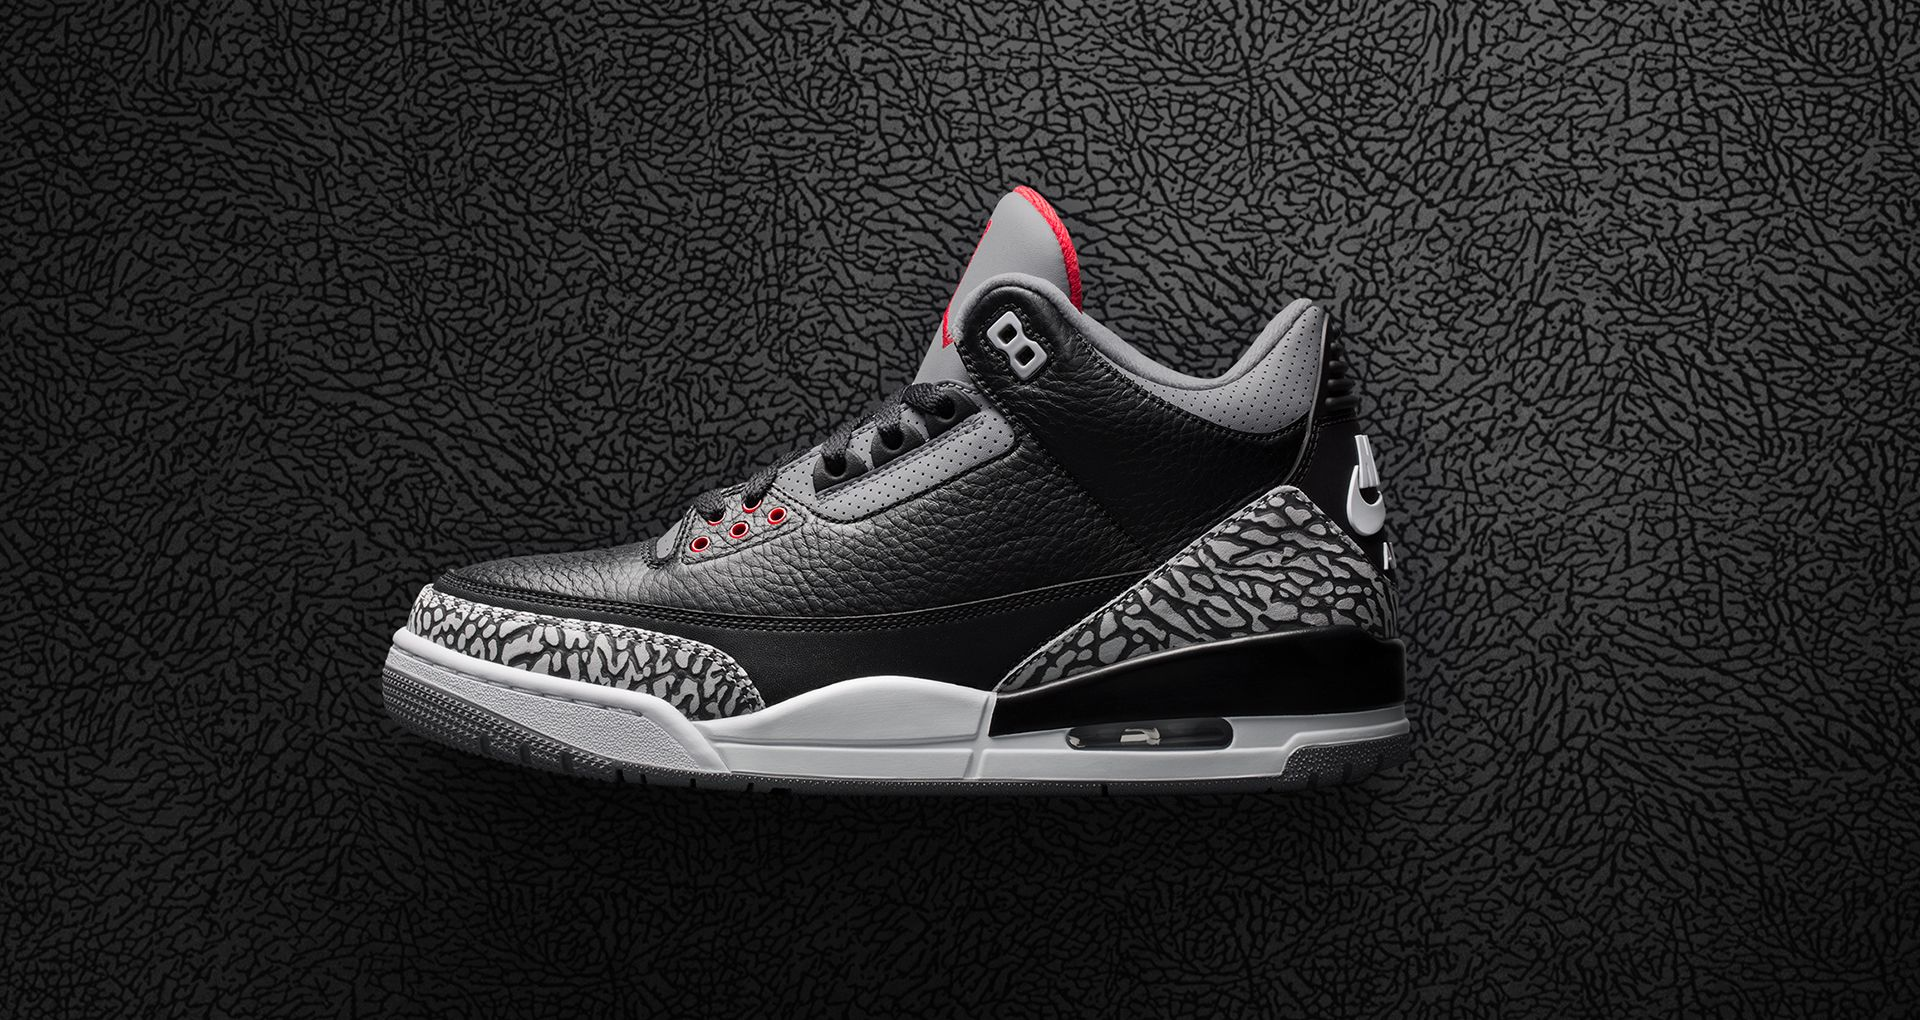 be322372763886 Air Jordan 3 Retro OG  Black Cement  2018 Release Date . Nike⁠+ SNKRS